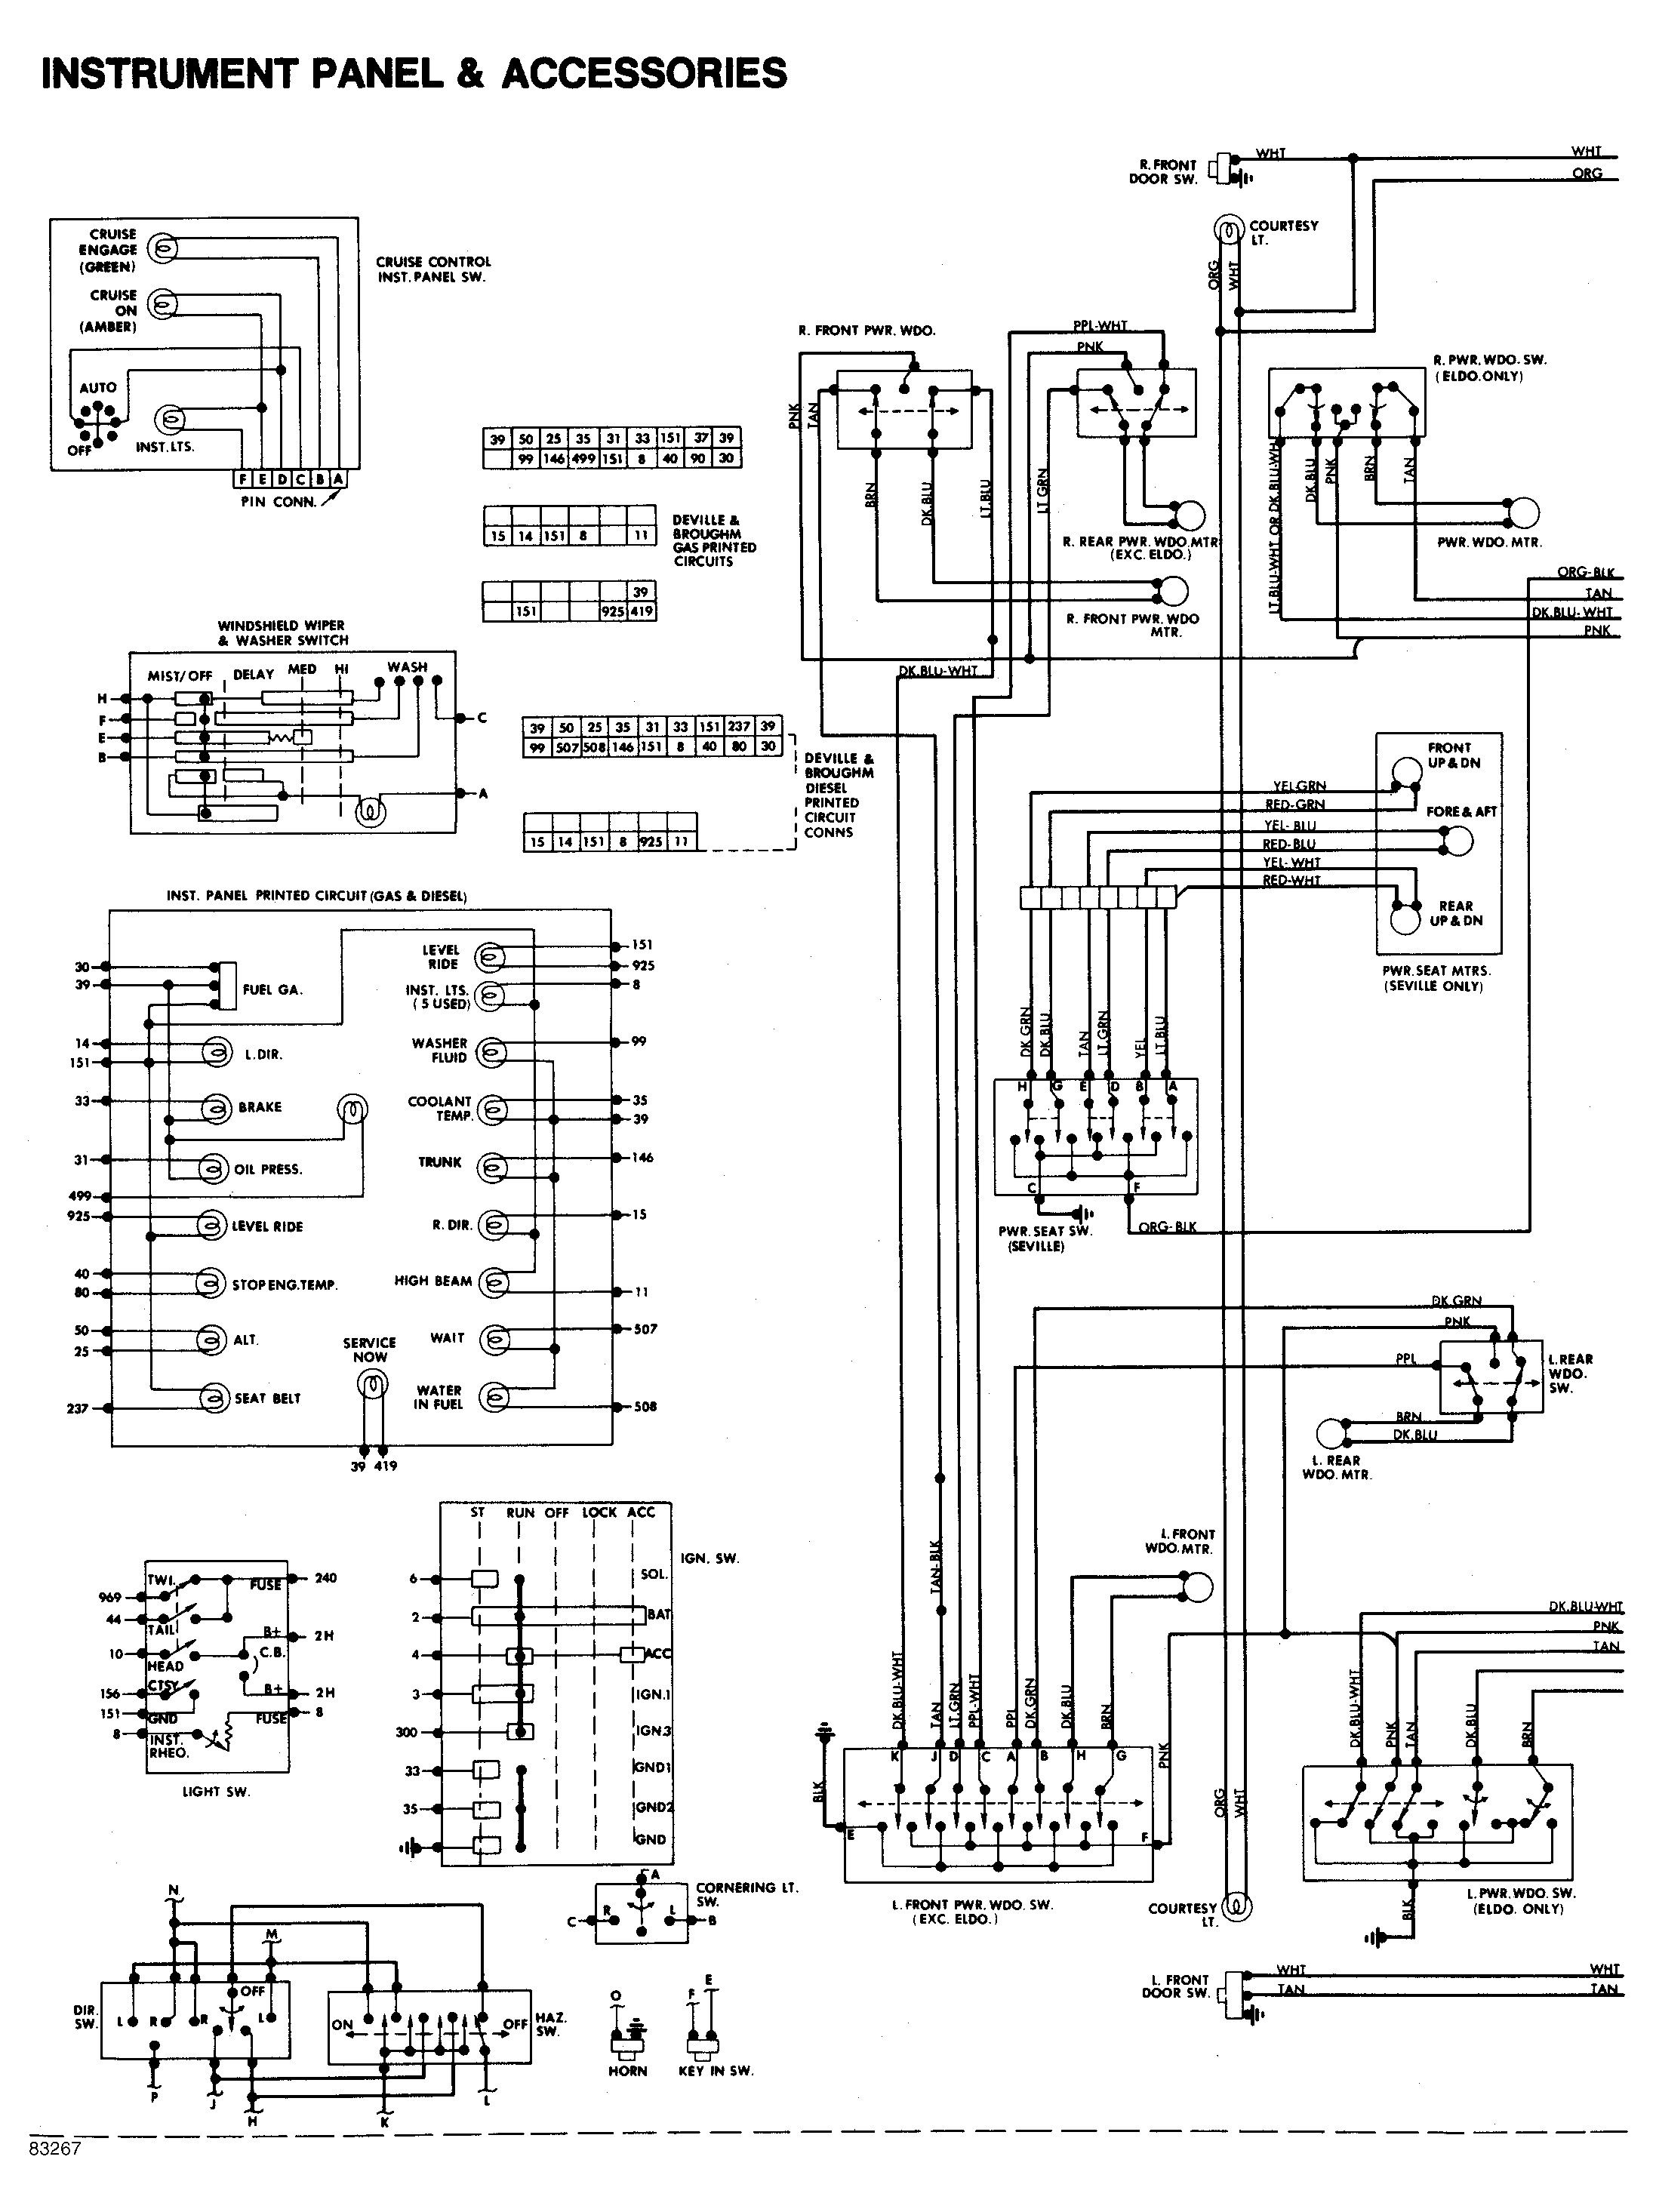 2000 Honda Accord Radio Wiring Diagram Fresh Daewoo Leganza Audio Wiring  Diagram Wiring Diagrams | Electrical wiring diagram, Diagram design,  Electrical diagramPinterest